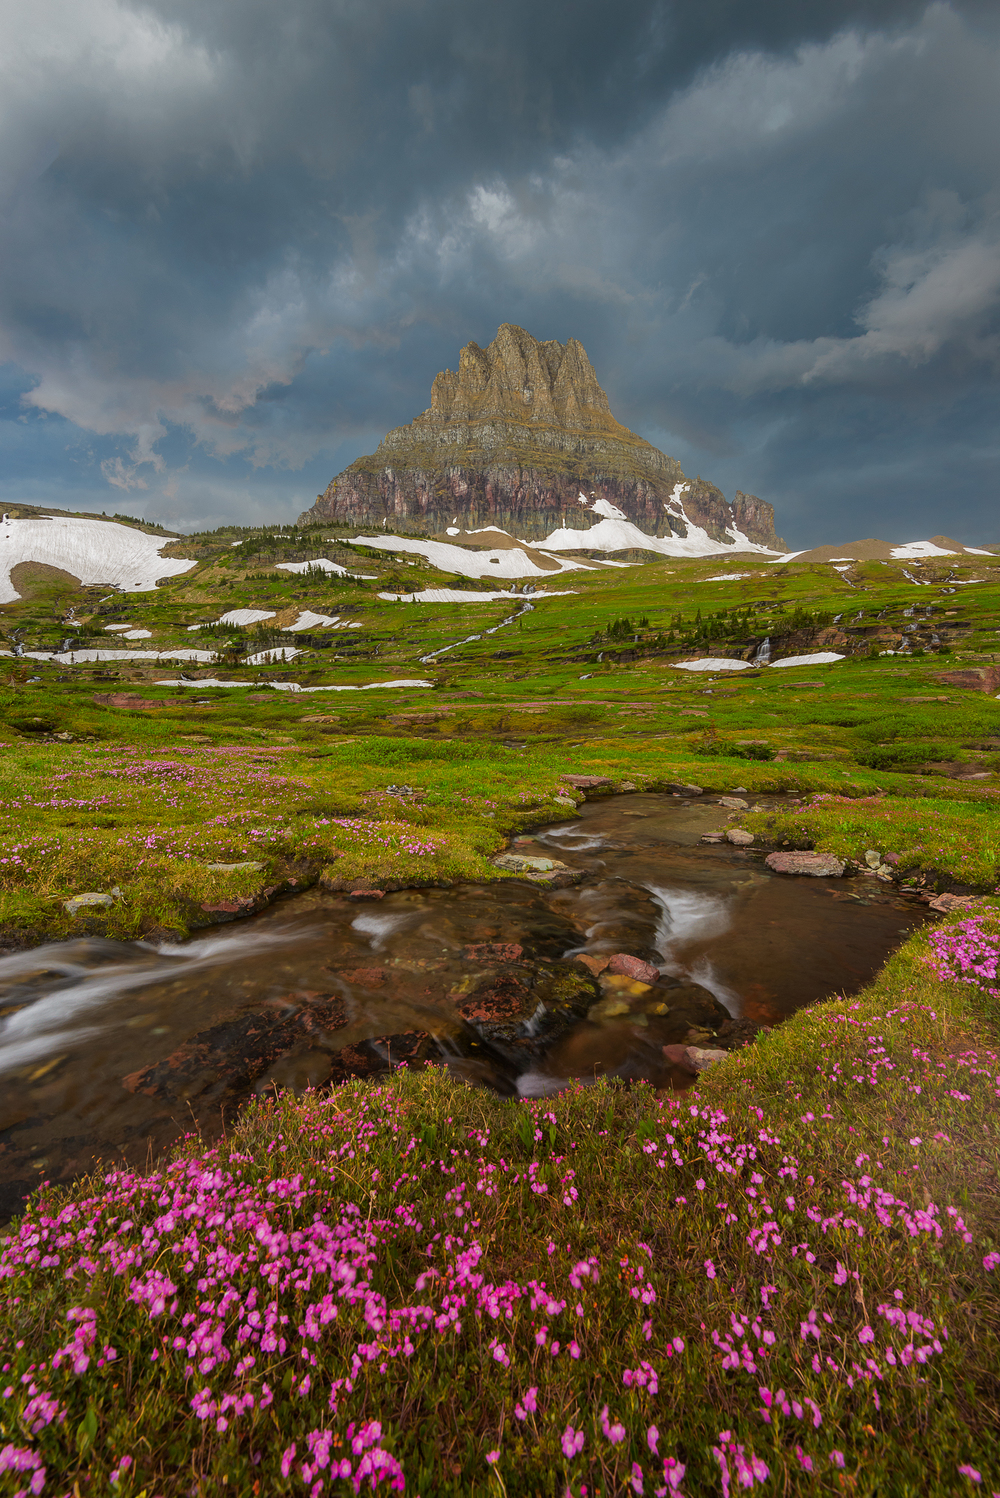 Approaching Storm & Clements Mountain, Glacier National Park, Montana Nikon D800, 14-24mm, 1/4 second, F11, ISO 200